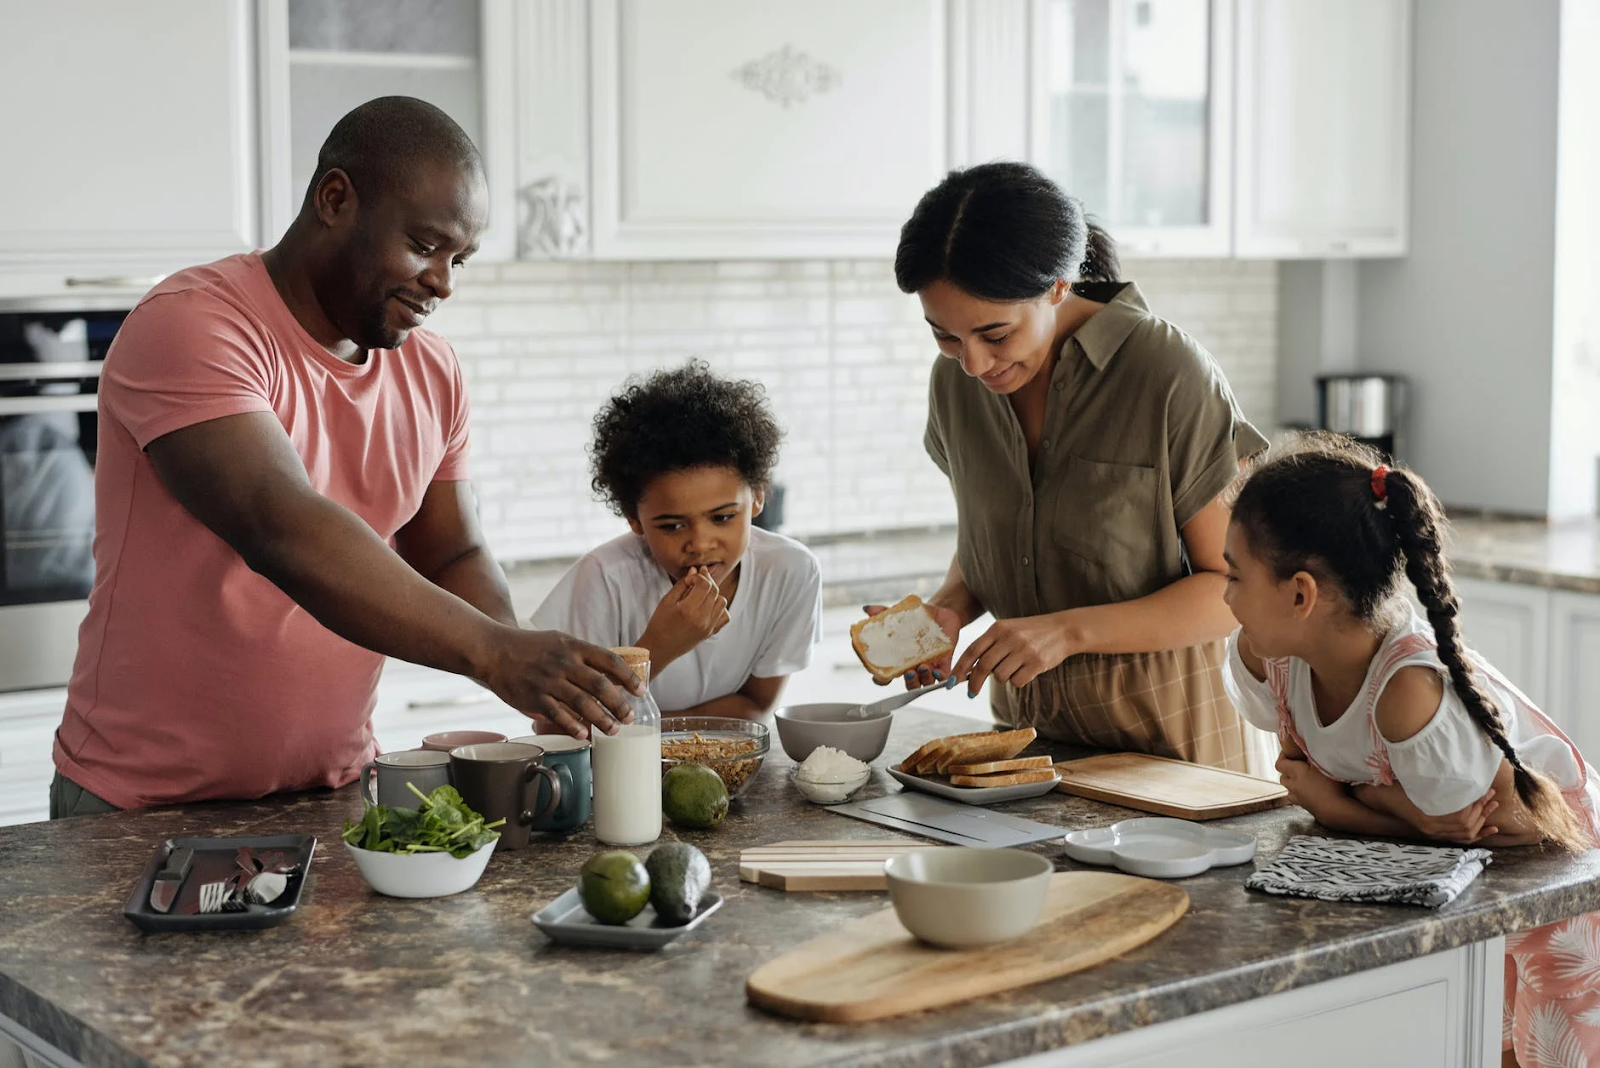 image shows two parents and two children cooking together